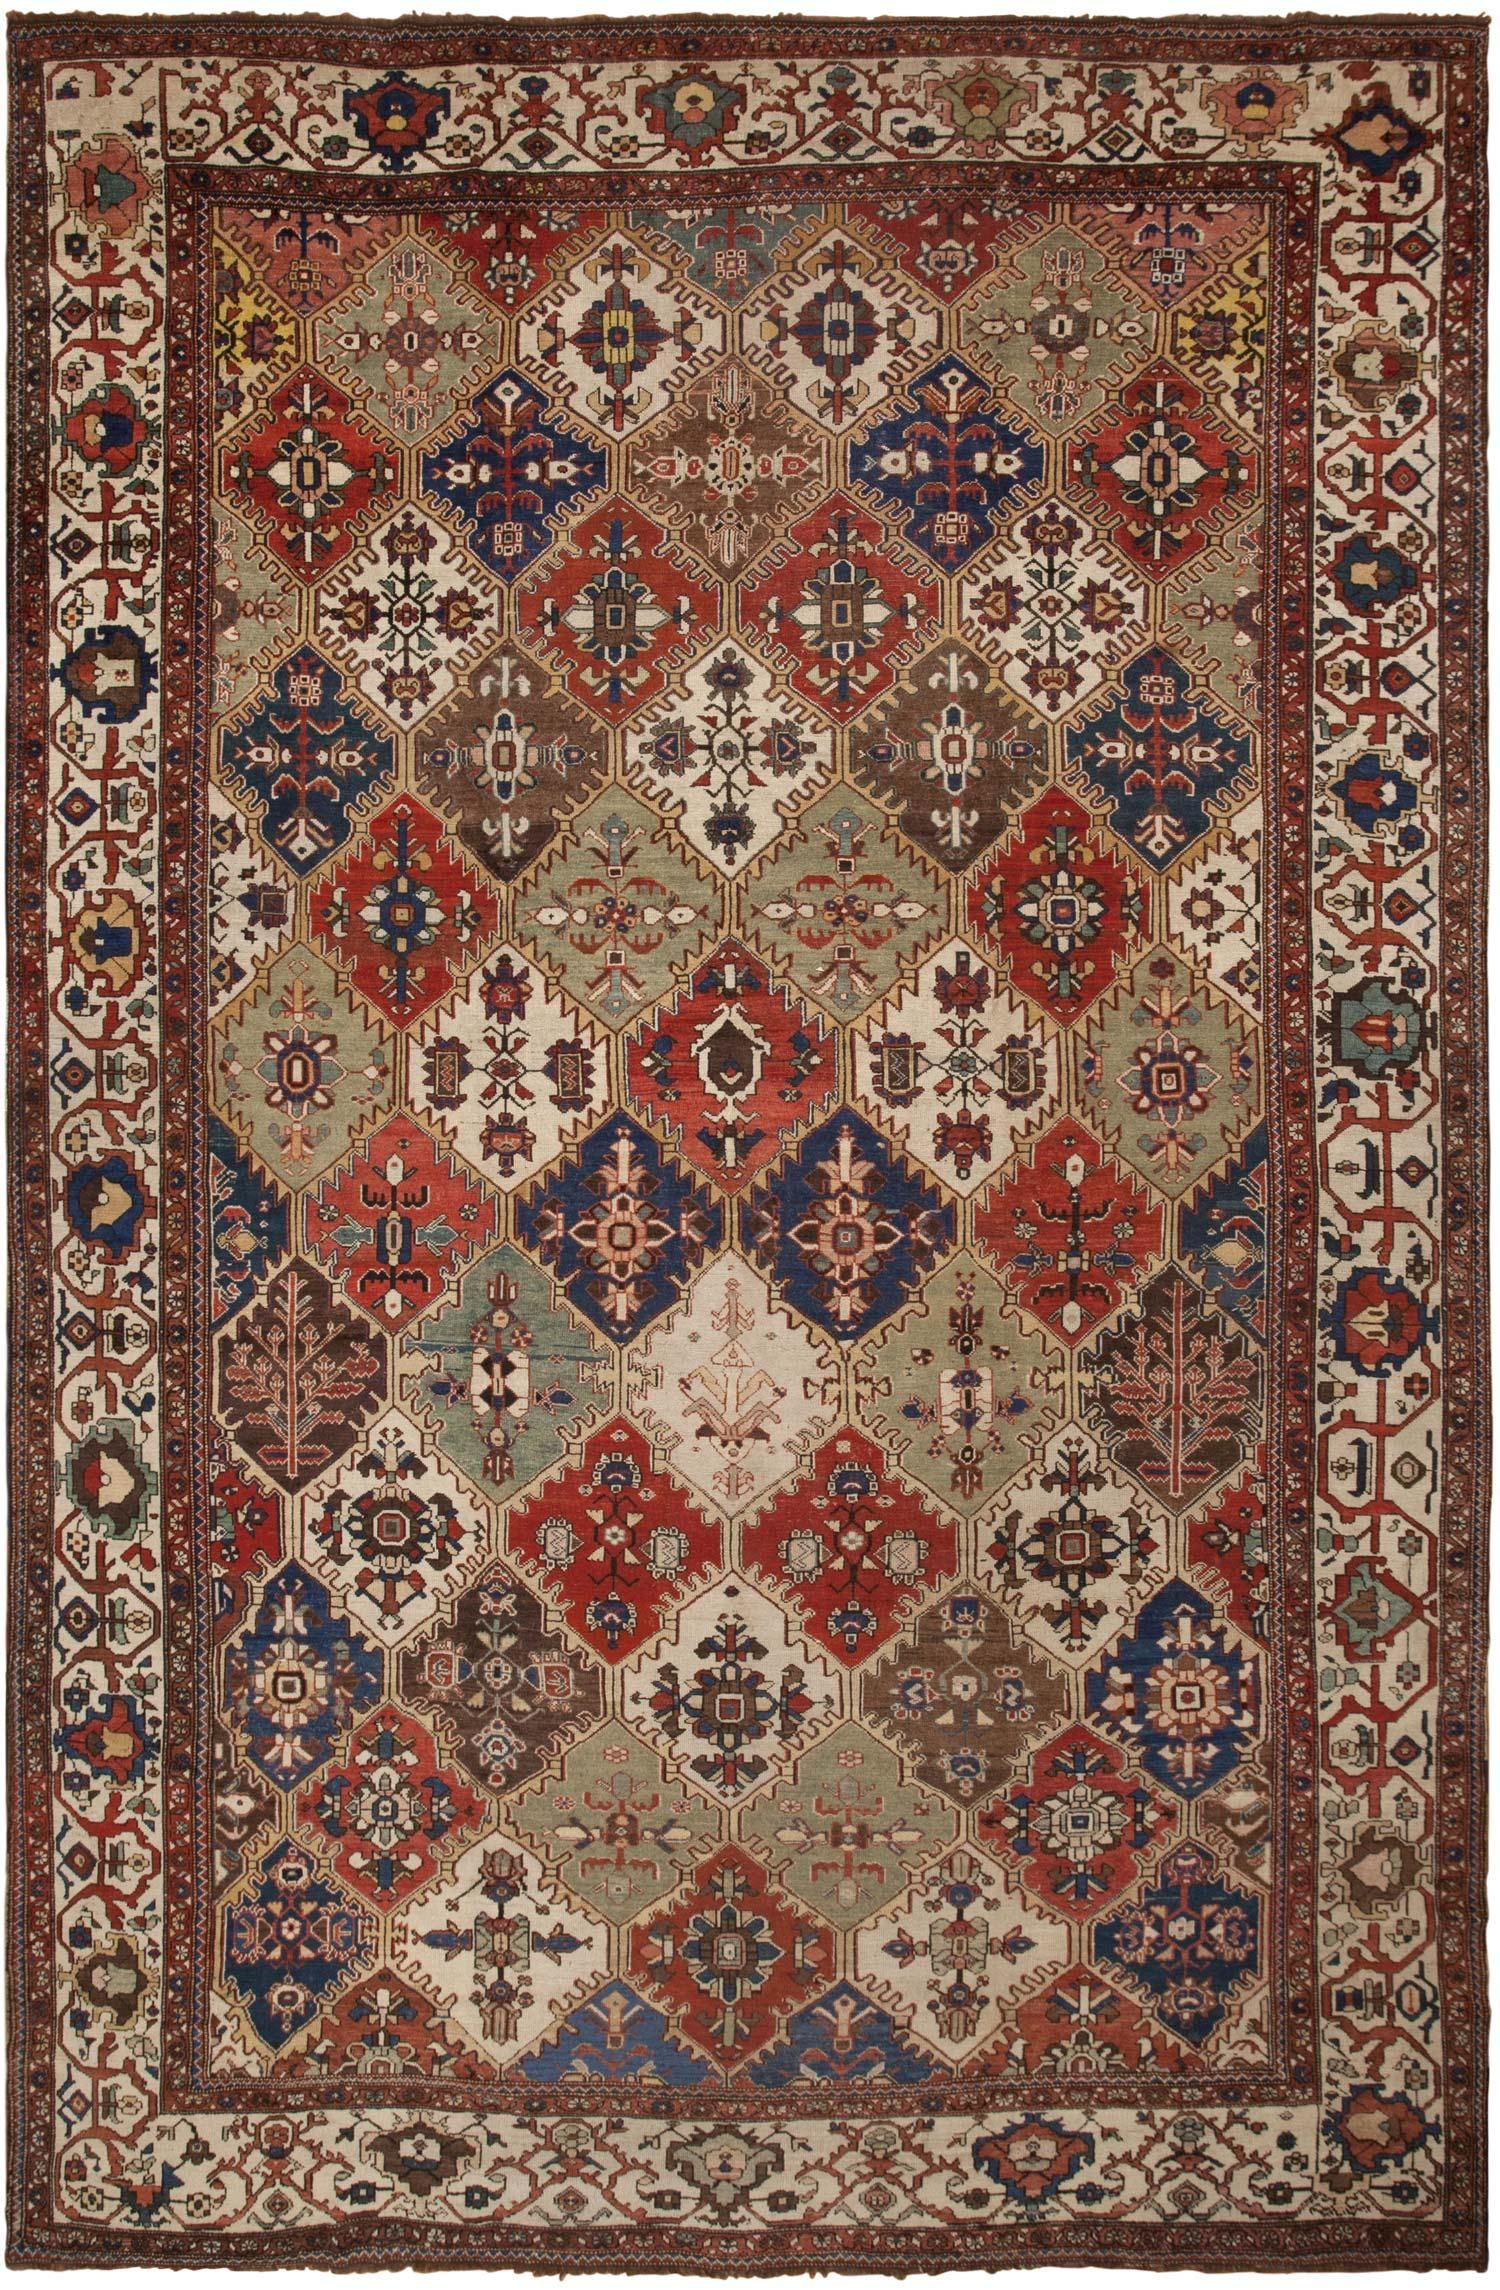 View This Beautiful Antique Bakhtiari Persian Rug 46294 From Nazmiyal S Fine Rugs And Decorative Carpet Collection